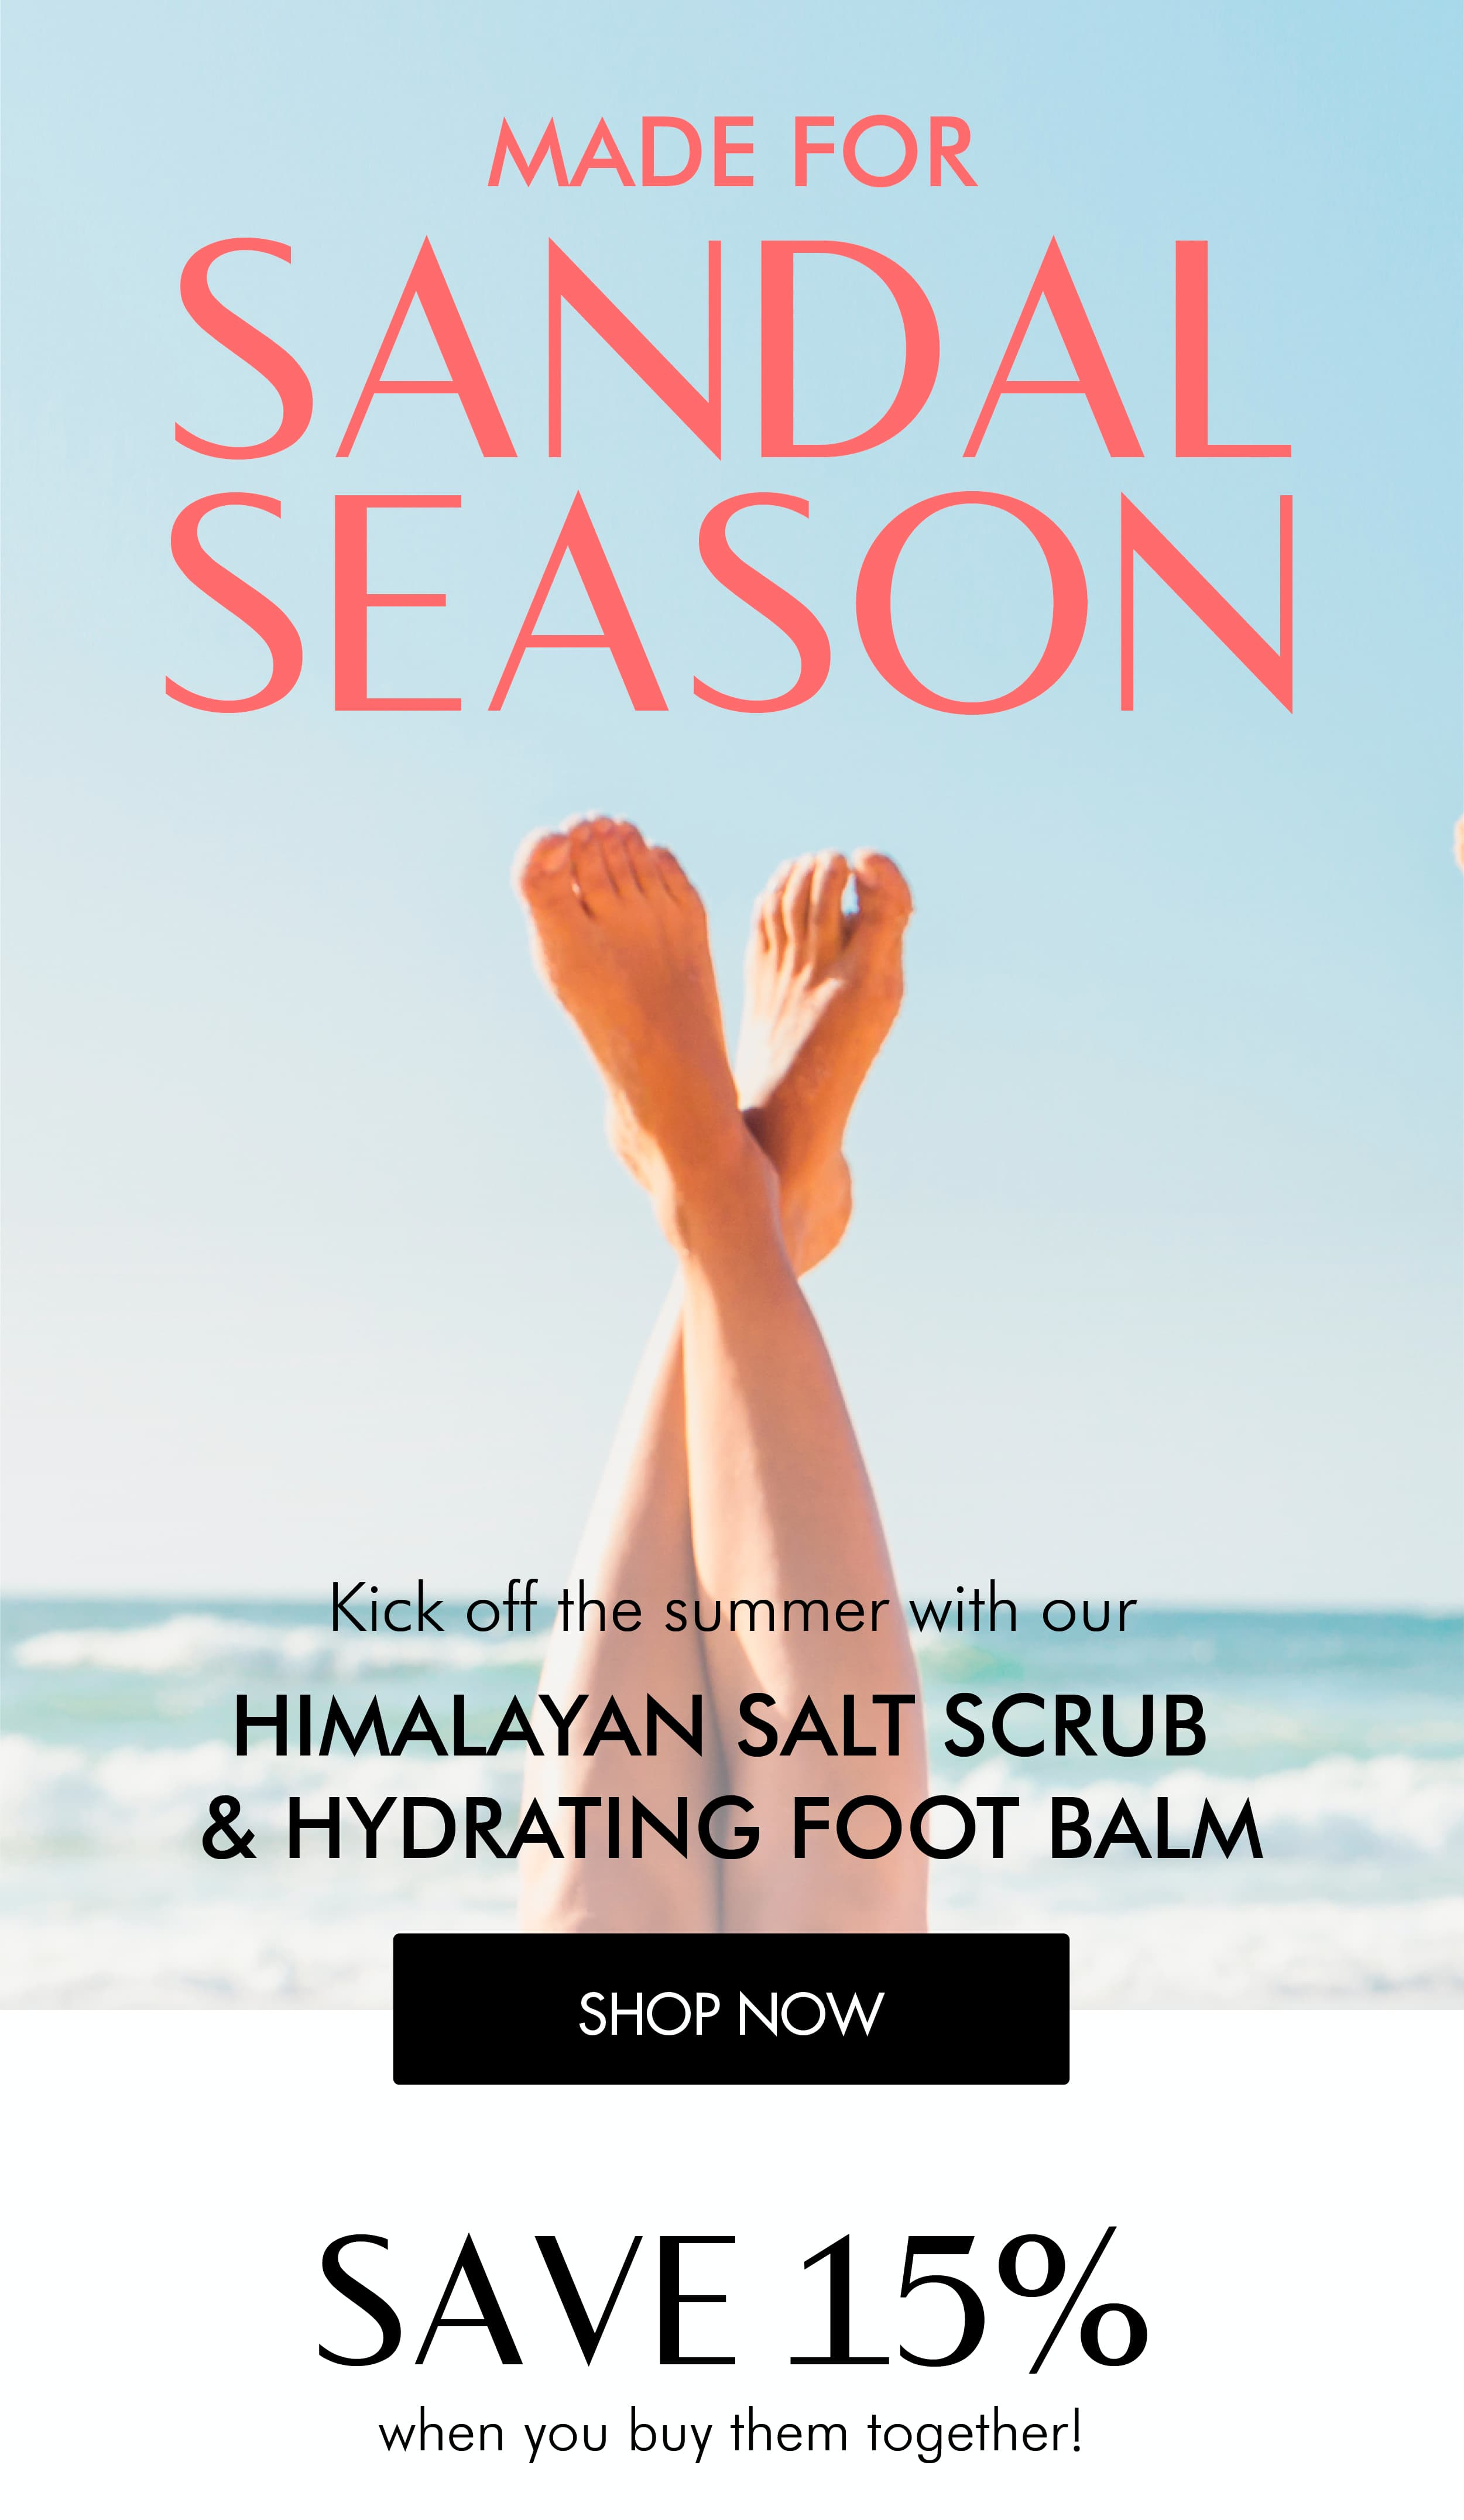 MADE FOR SANDAL SEASON. Kick of the summer with our HYDRATING FOOT BALM & HIMALAYAN SALT SCRUB